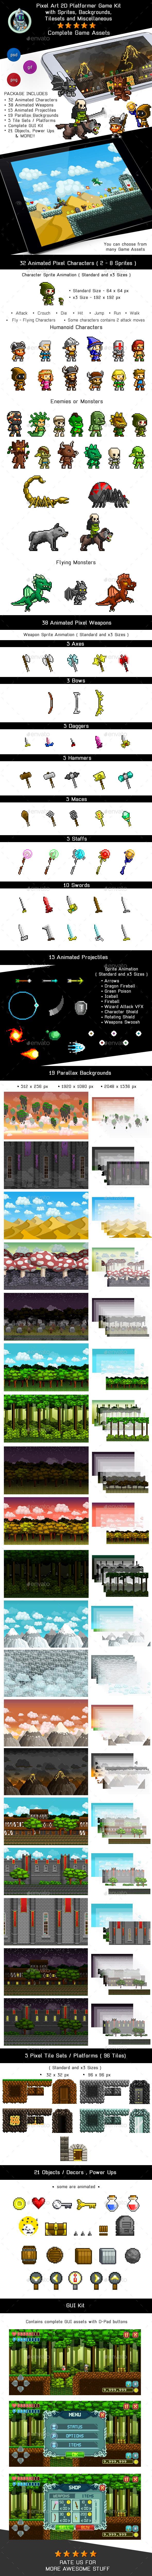 Pixel Art 2D Platformer Video Game Kit Assets - Game Kits Game Assets